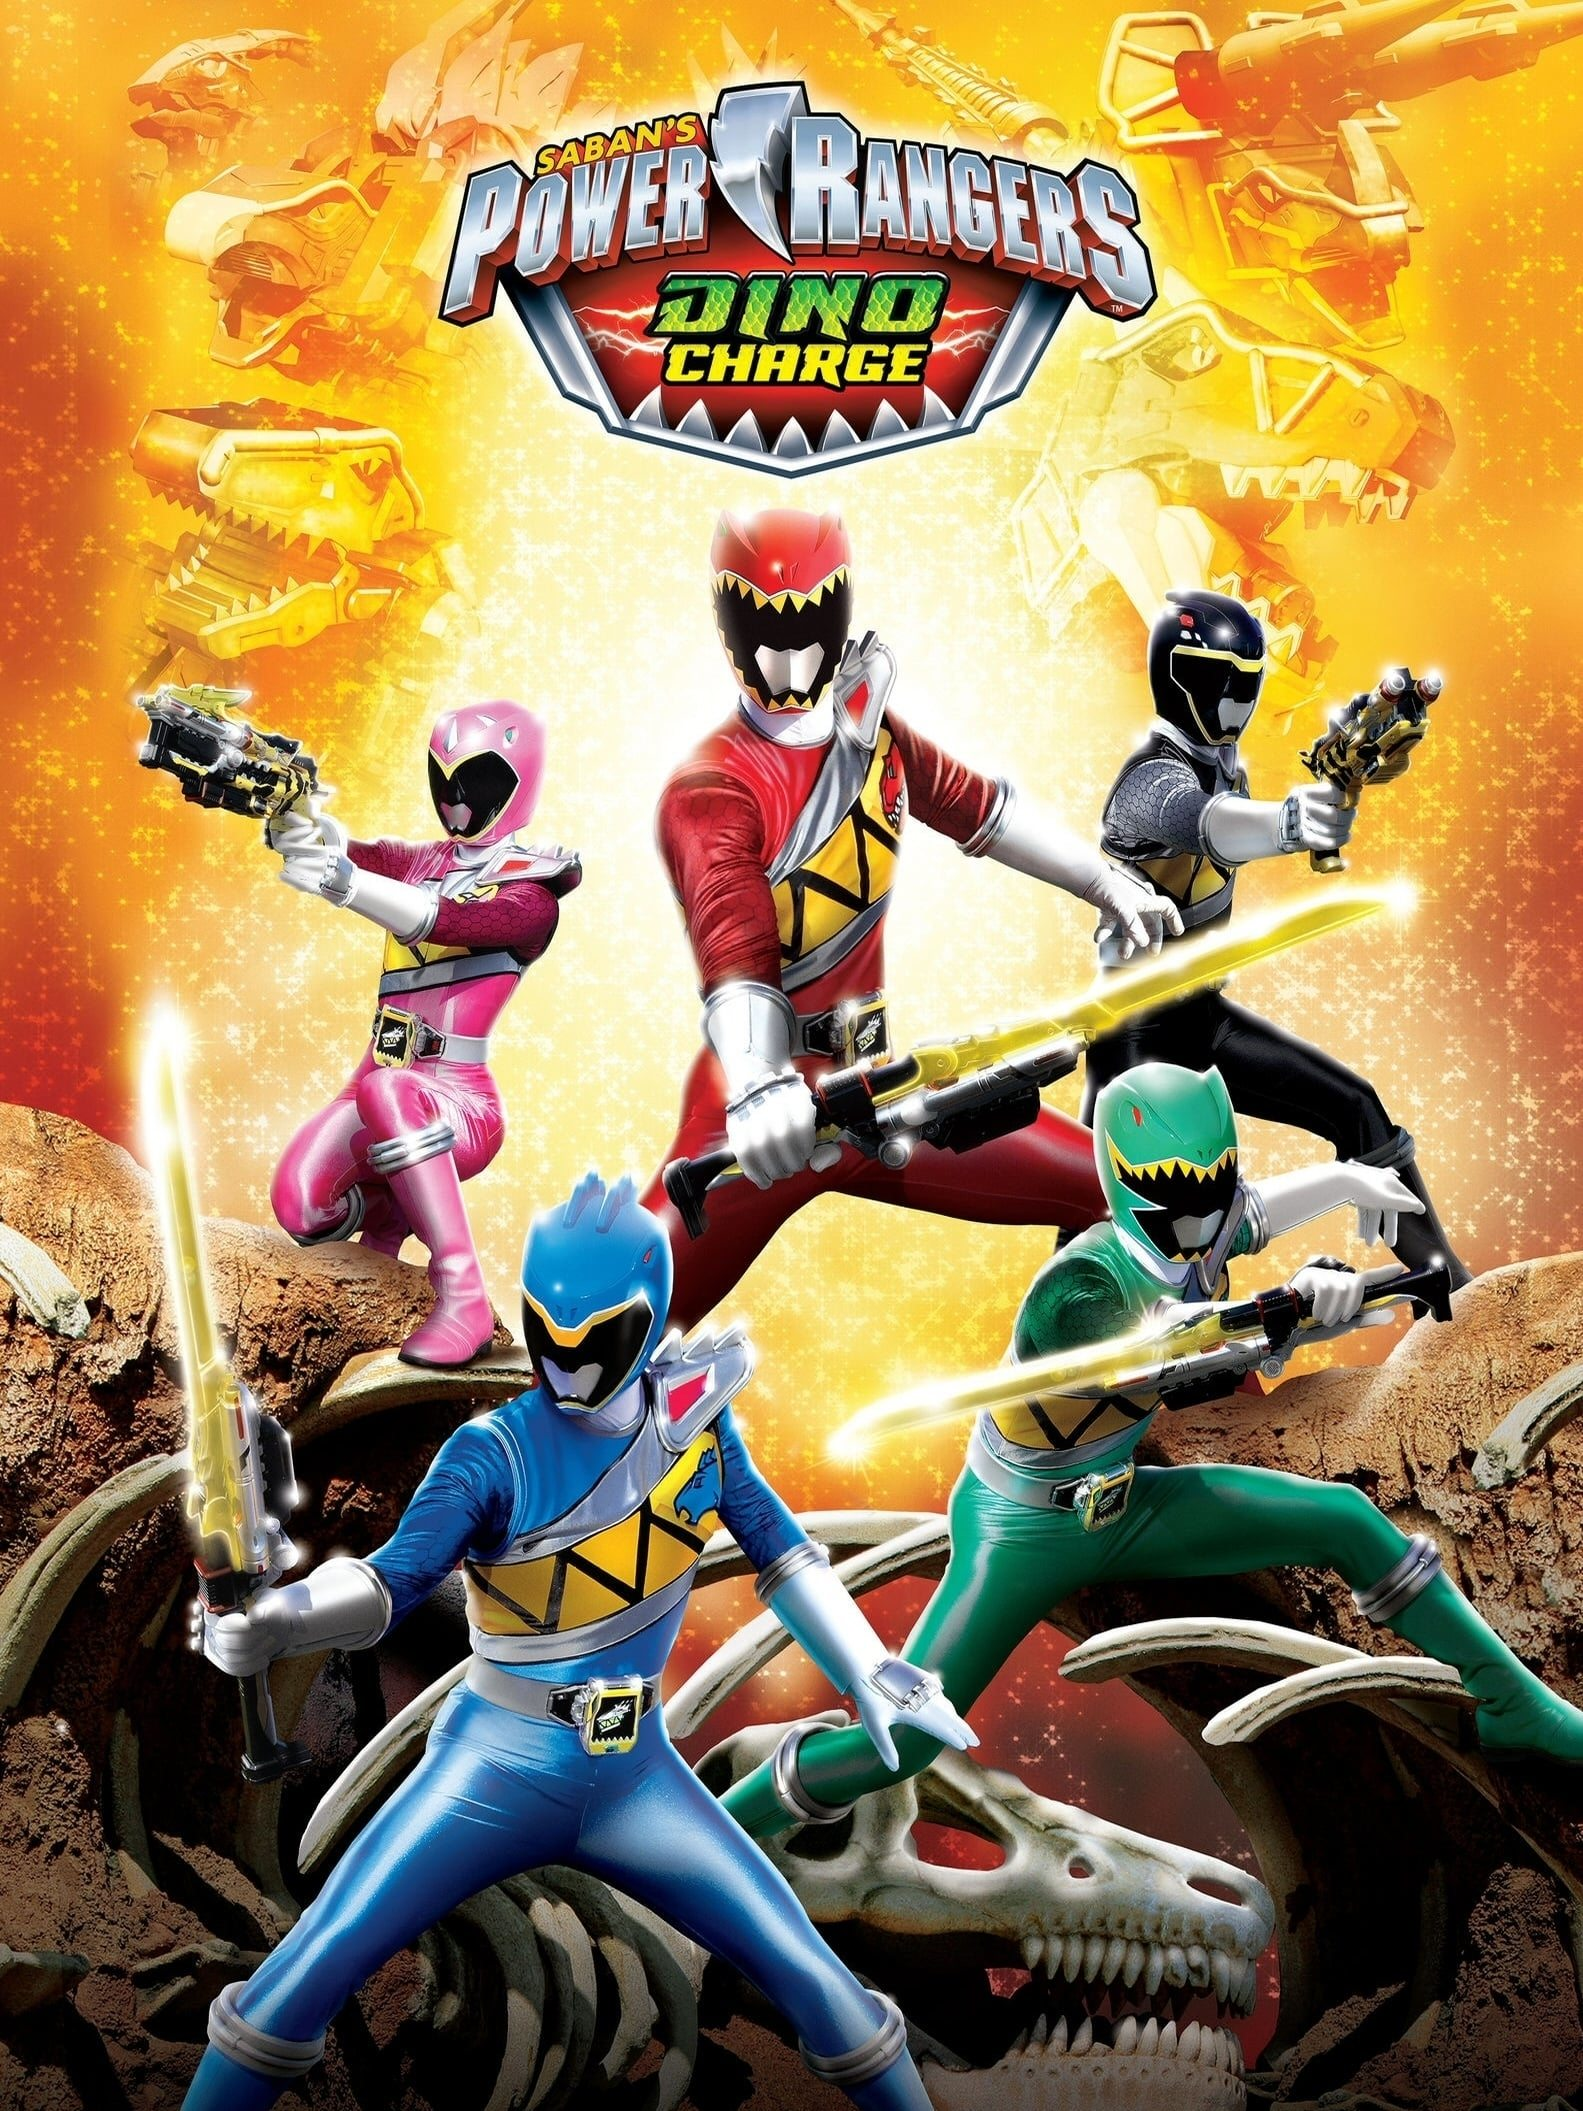 Power Ranger Dino Charge Special 01-02 Subtitle Indonesia